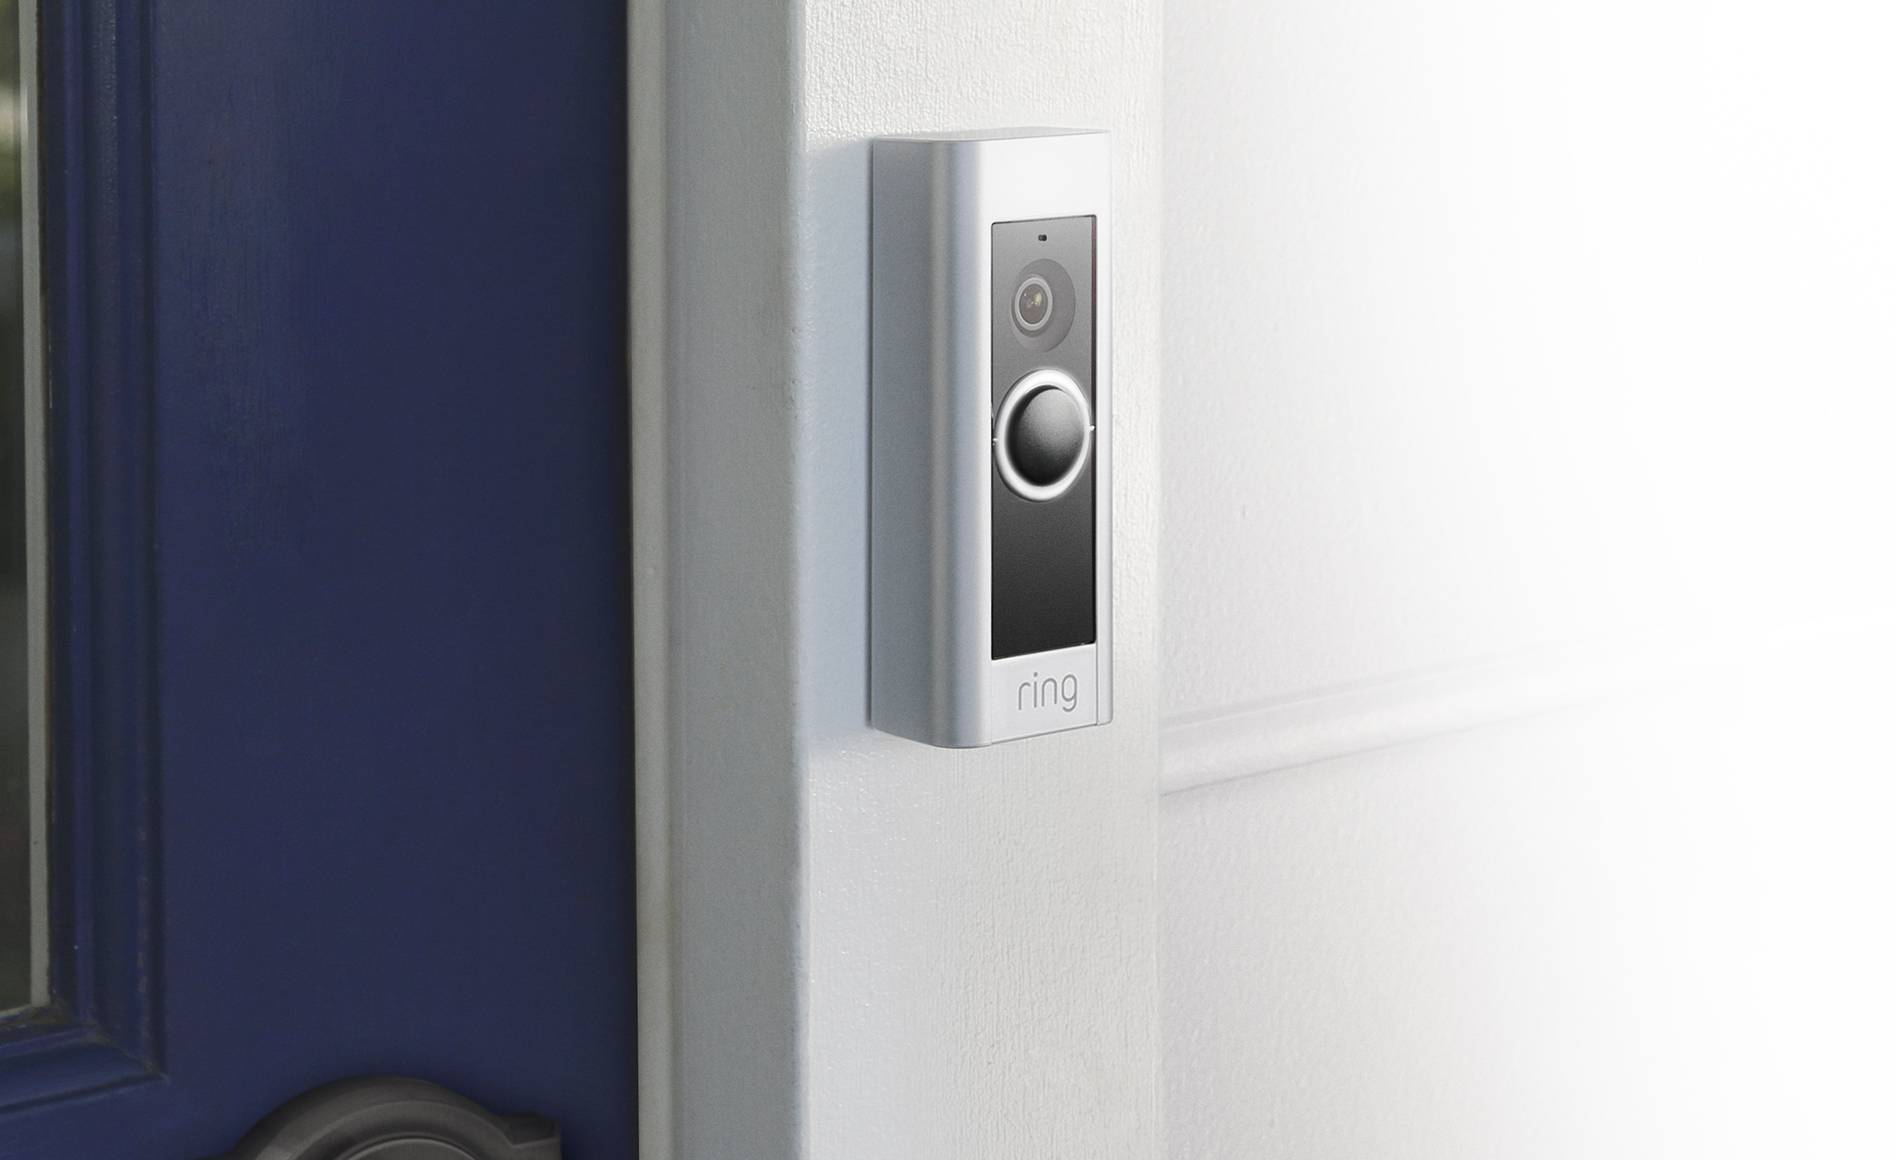 Is Ring Doorbell Waterproof